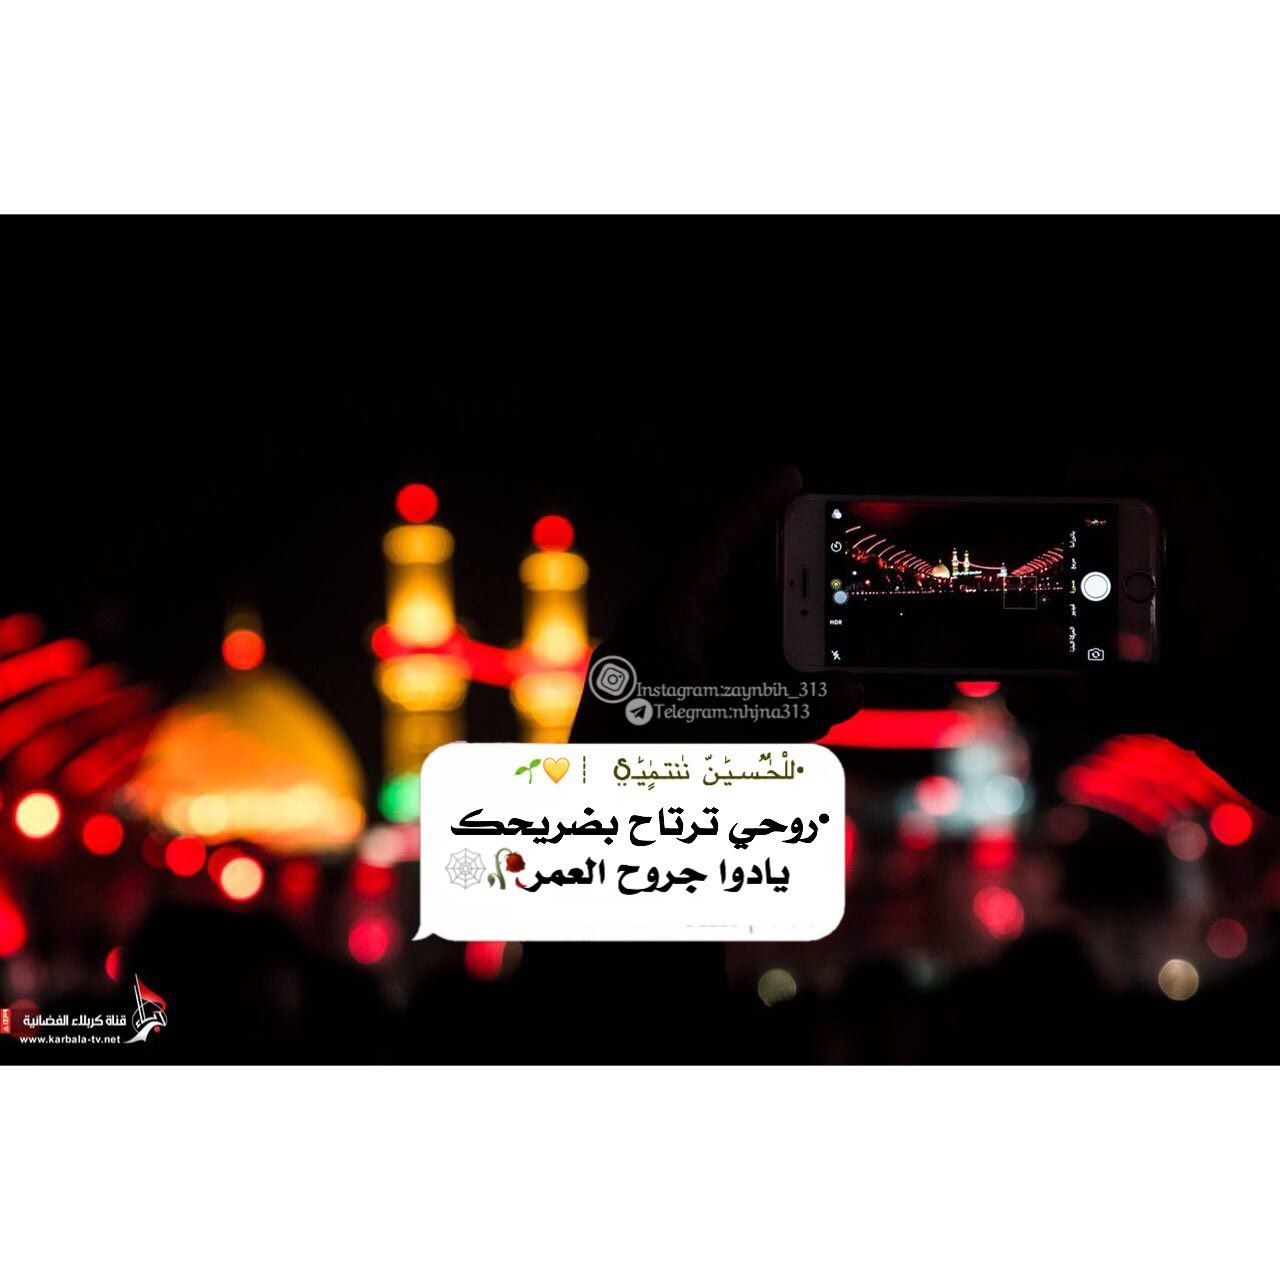 Pin By گرزآيهہ On رمزيات حسينية Islamic Love Quotes Karbala Photography Islamic Quotes